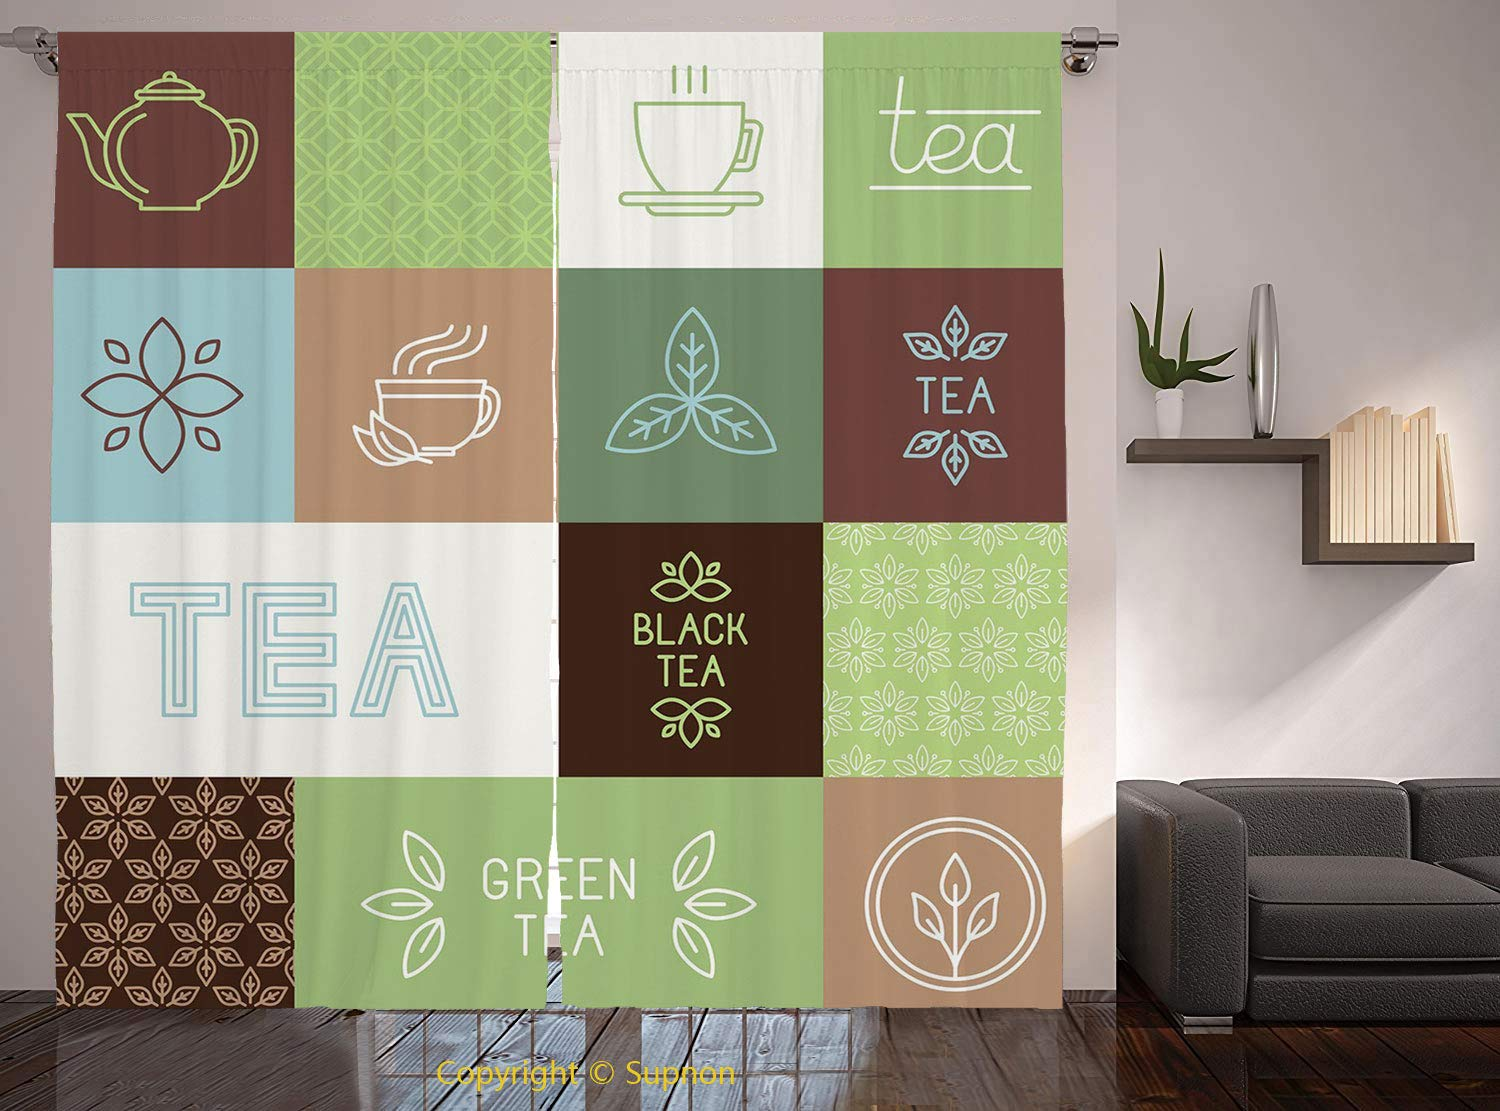 Living Room Bedroom Window Drapes/Rod Pocket Curtain Panel Satin Curtains/2 Curtain Panels/84 x 84 Inch/Tea Party,Checkered Tea Themed Images Symbols Geometrical Soft Colored Minimalist Decorative,Gre